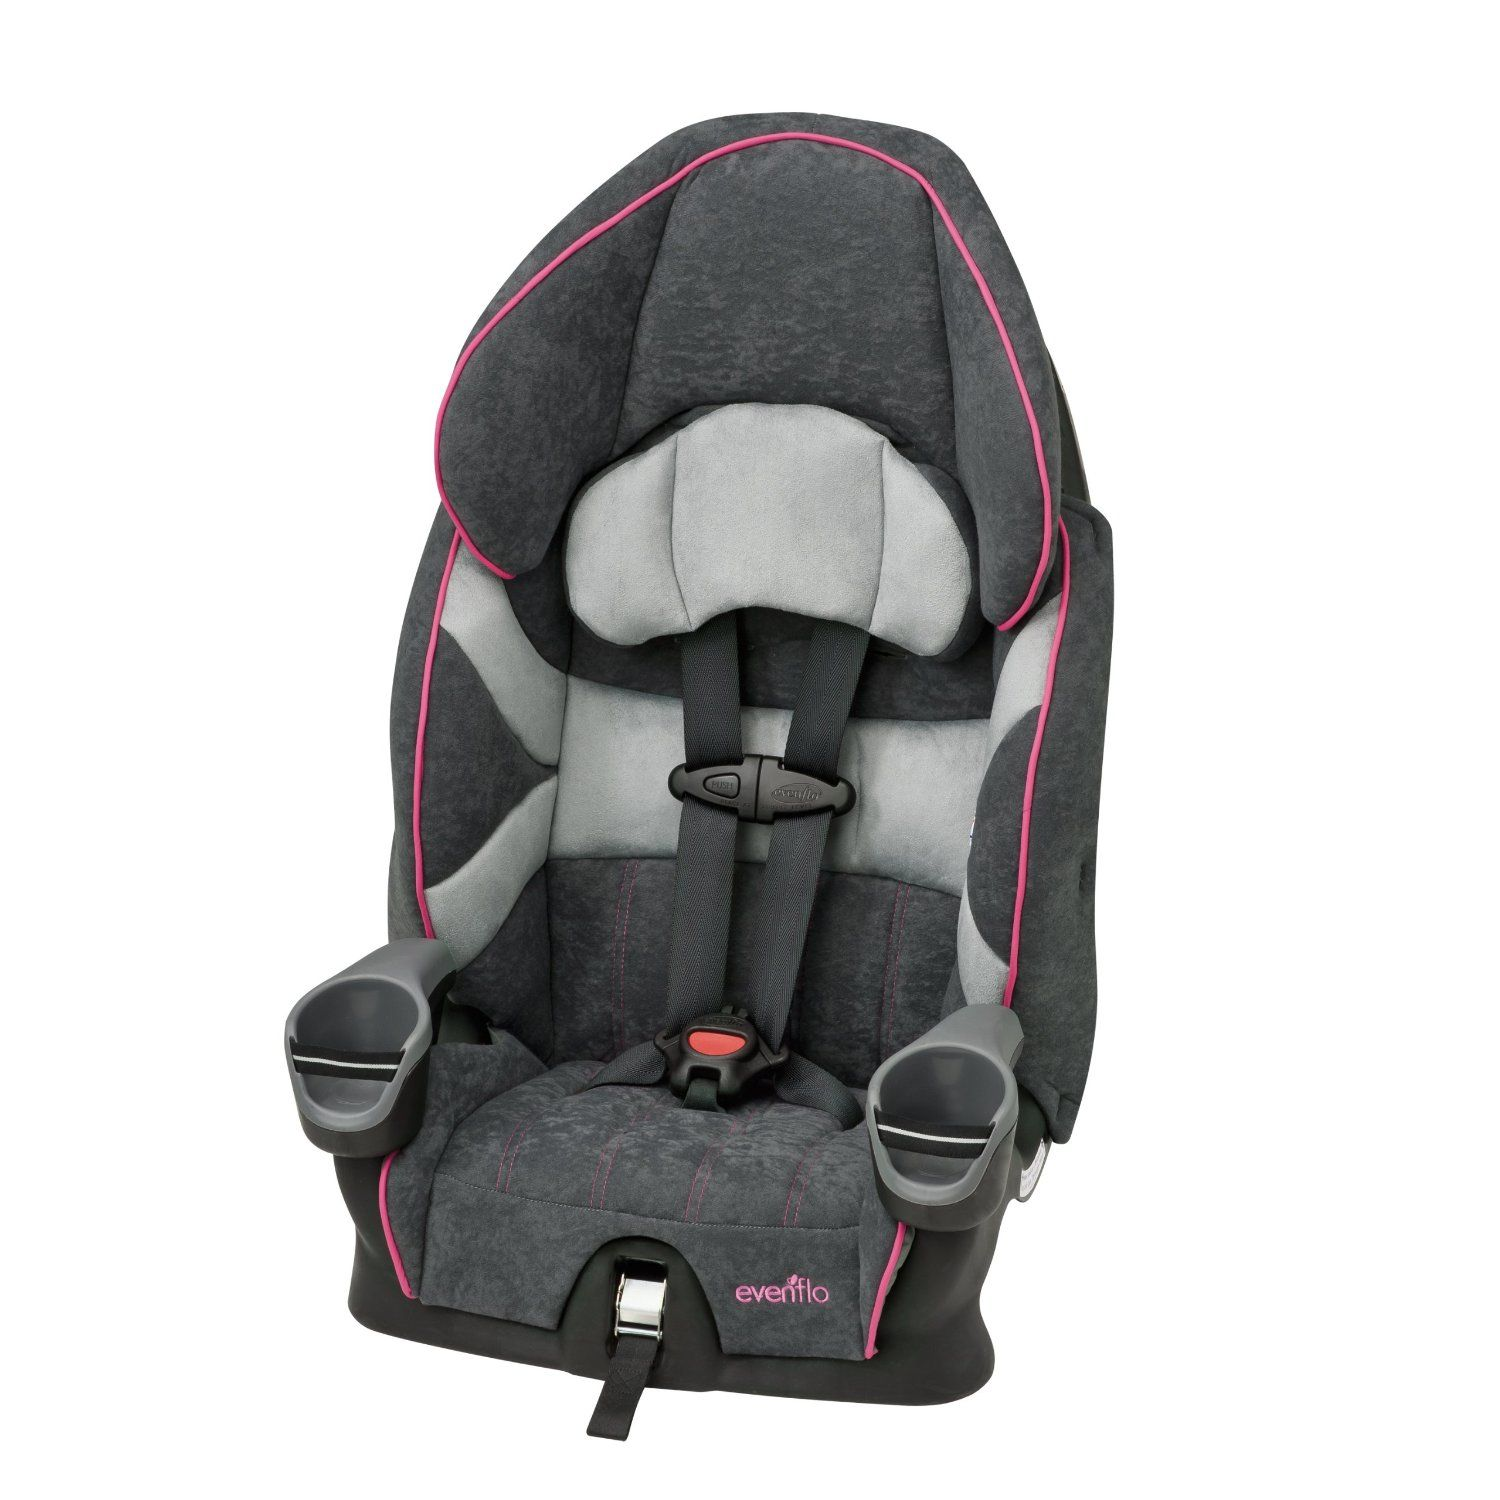 Child Safety Booster Car Seats Evenflo Maestro Seat